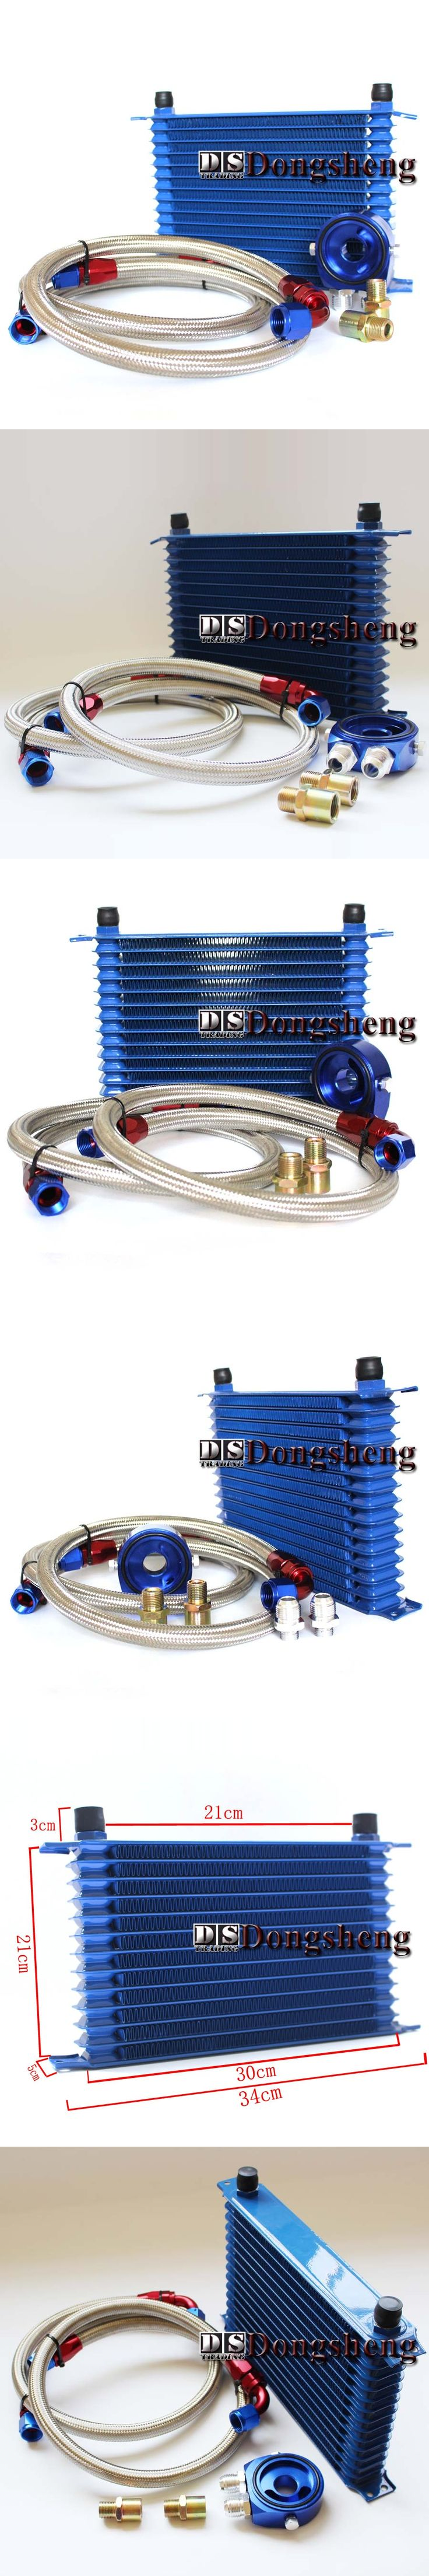 UNIVERSAL 15 ROWS OIL COOLER+OIL FILTER SANDWICH ADAPTER BLUE + SS NYLON STAINLESS STEEL BRAIDED AN10 HOSE